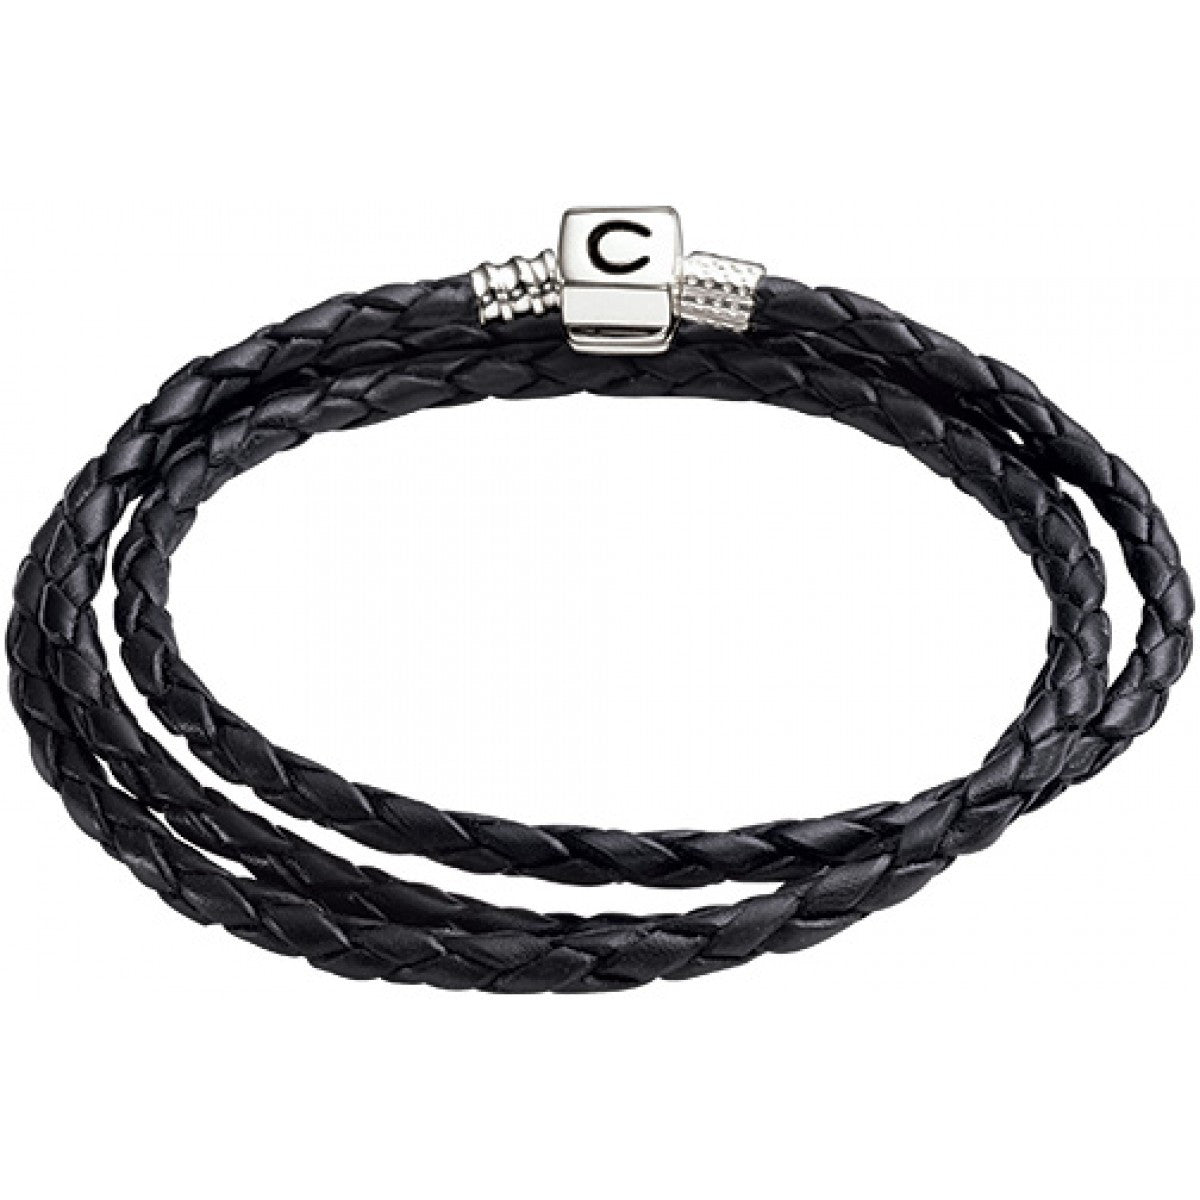 Chamilia Bracelet Ebony Braided Medium S